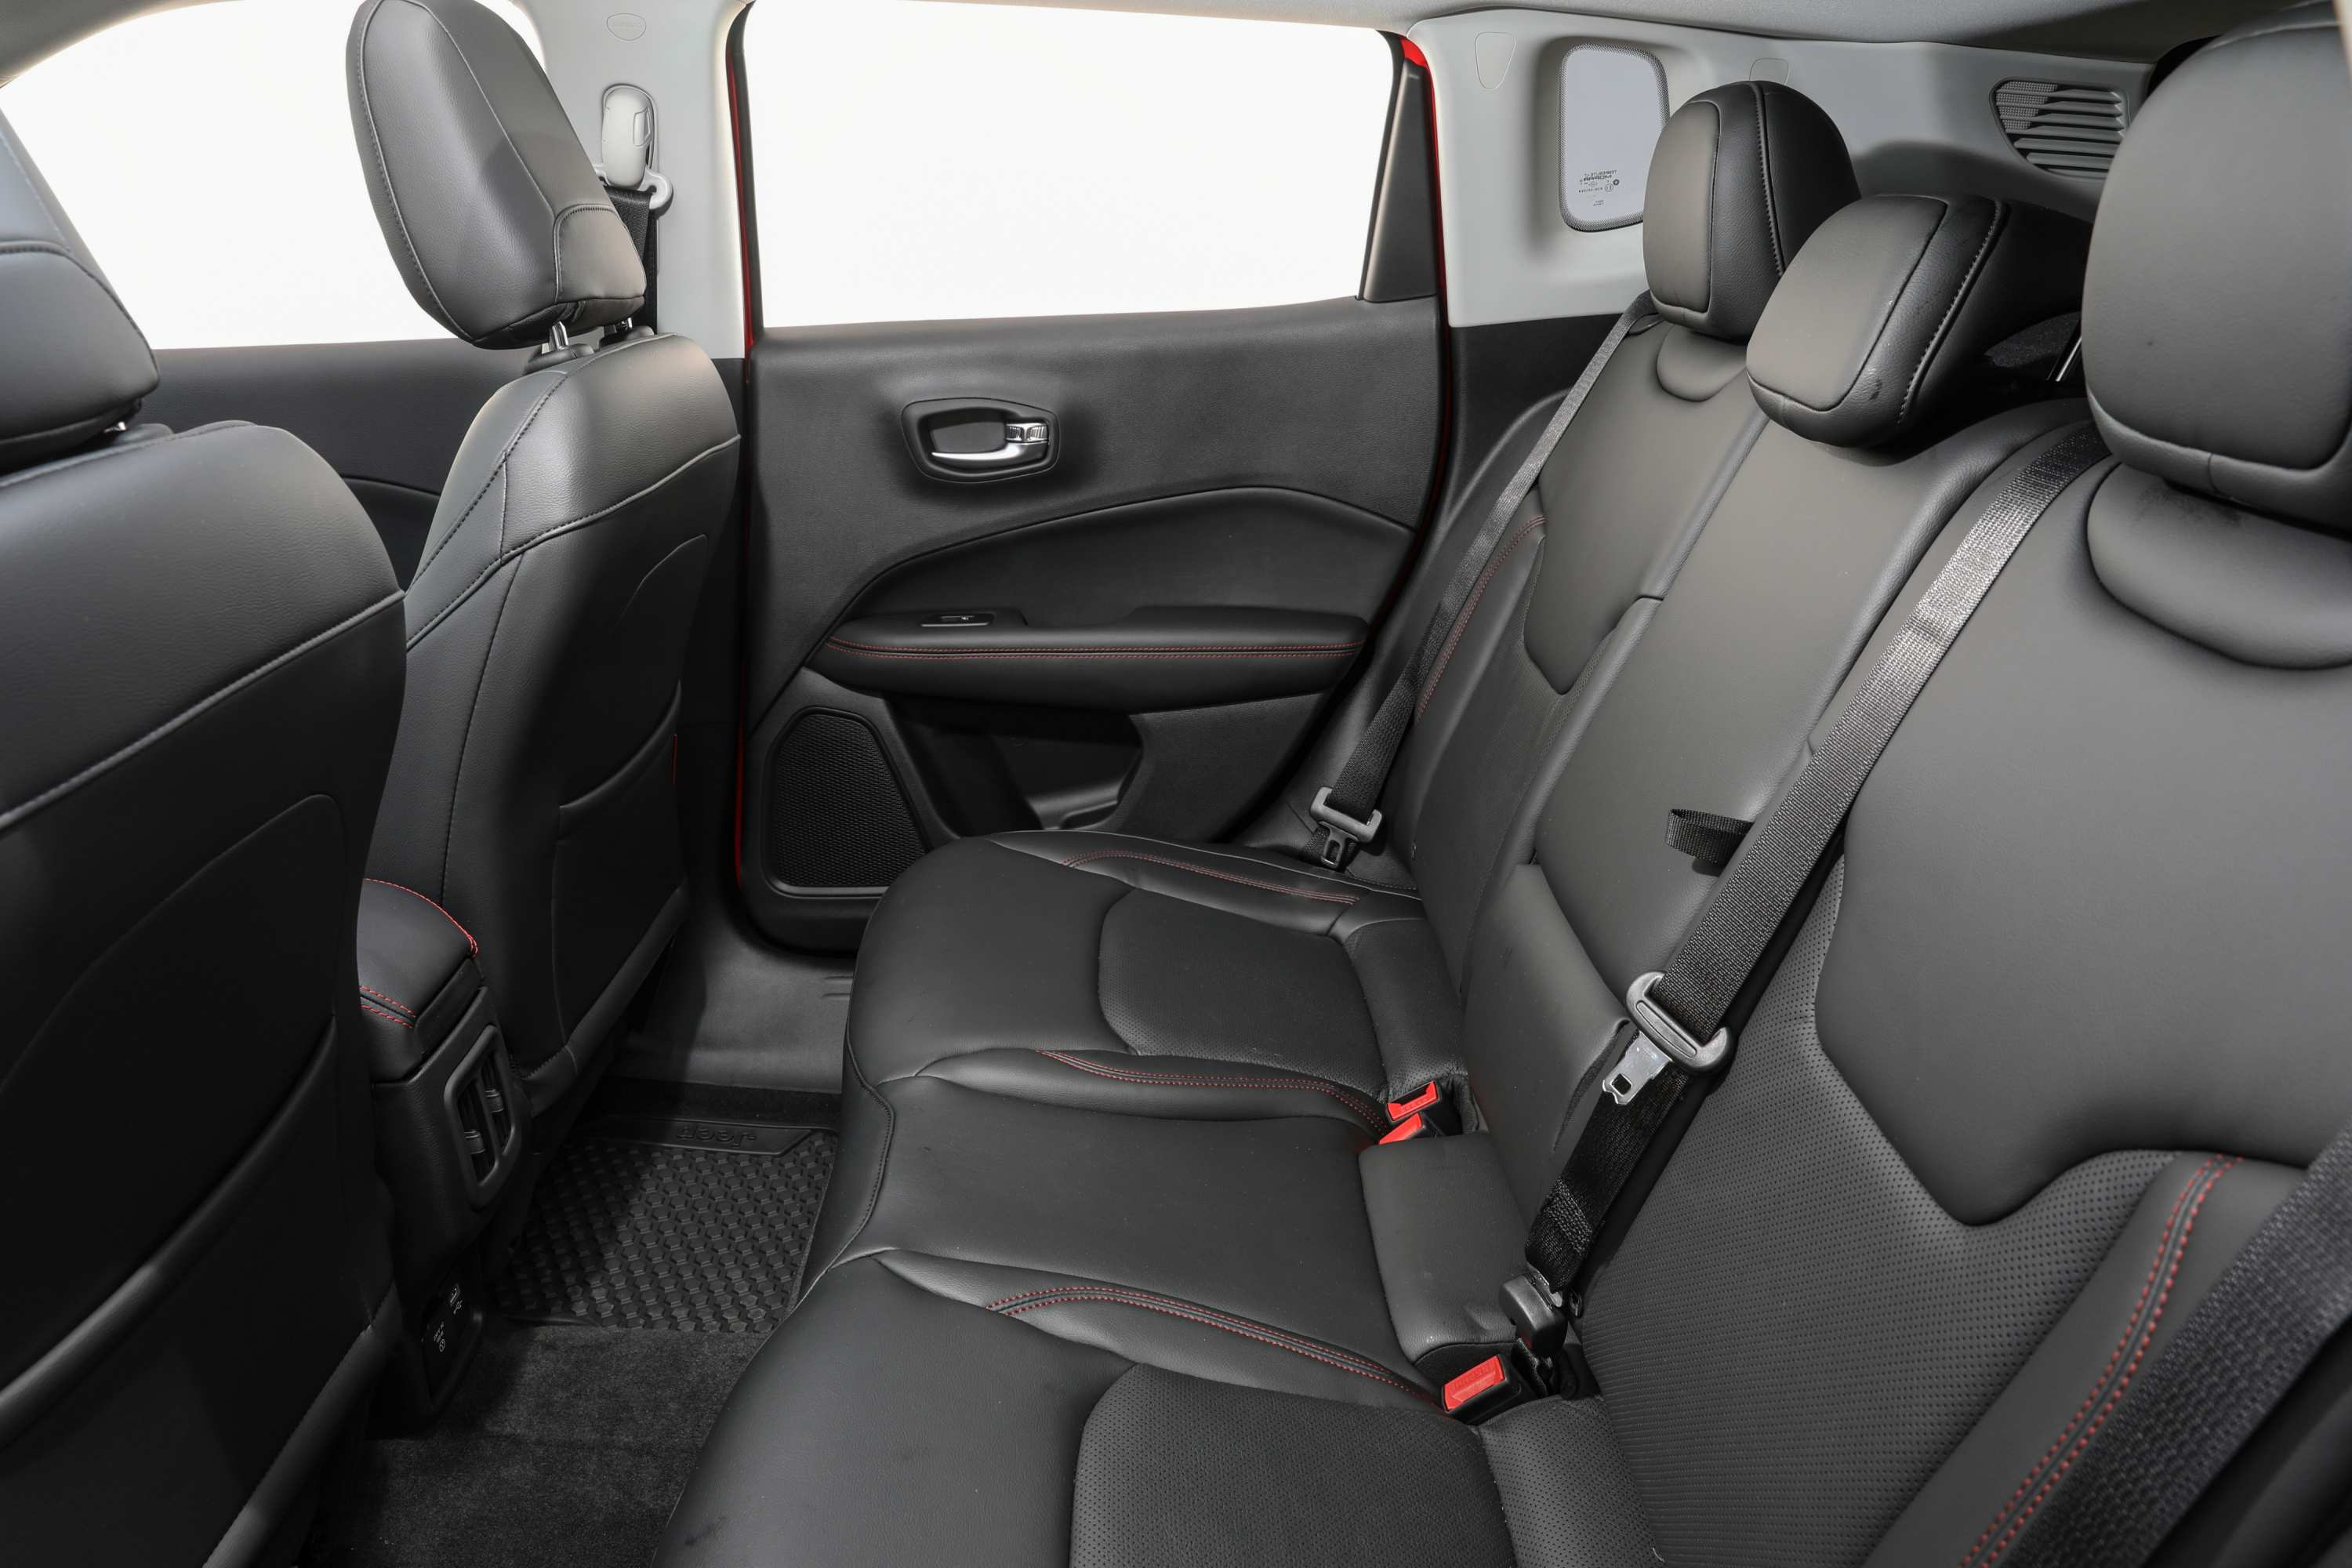 2020 Jeep Compass Trailhawk rear seats 2